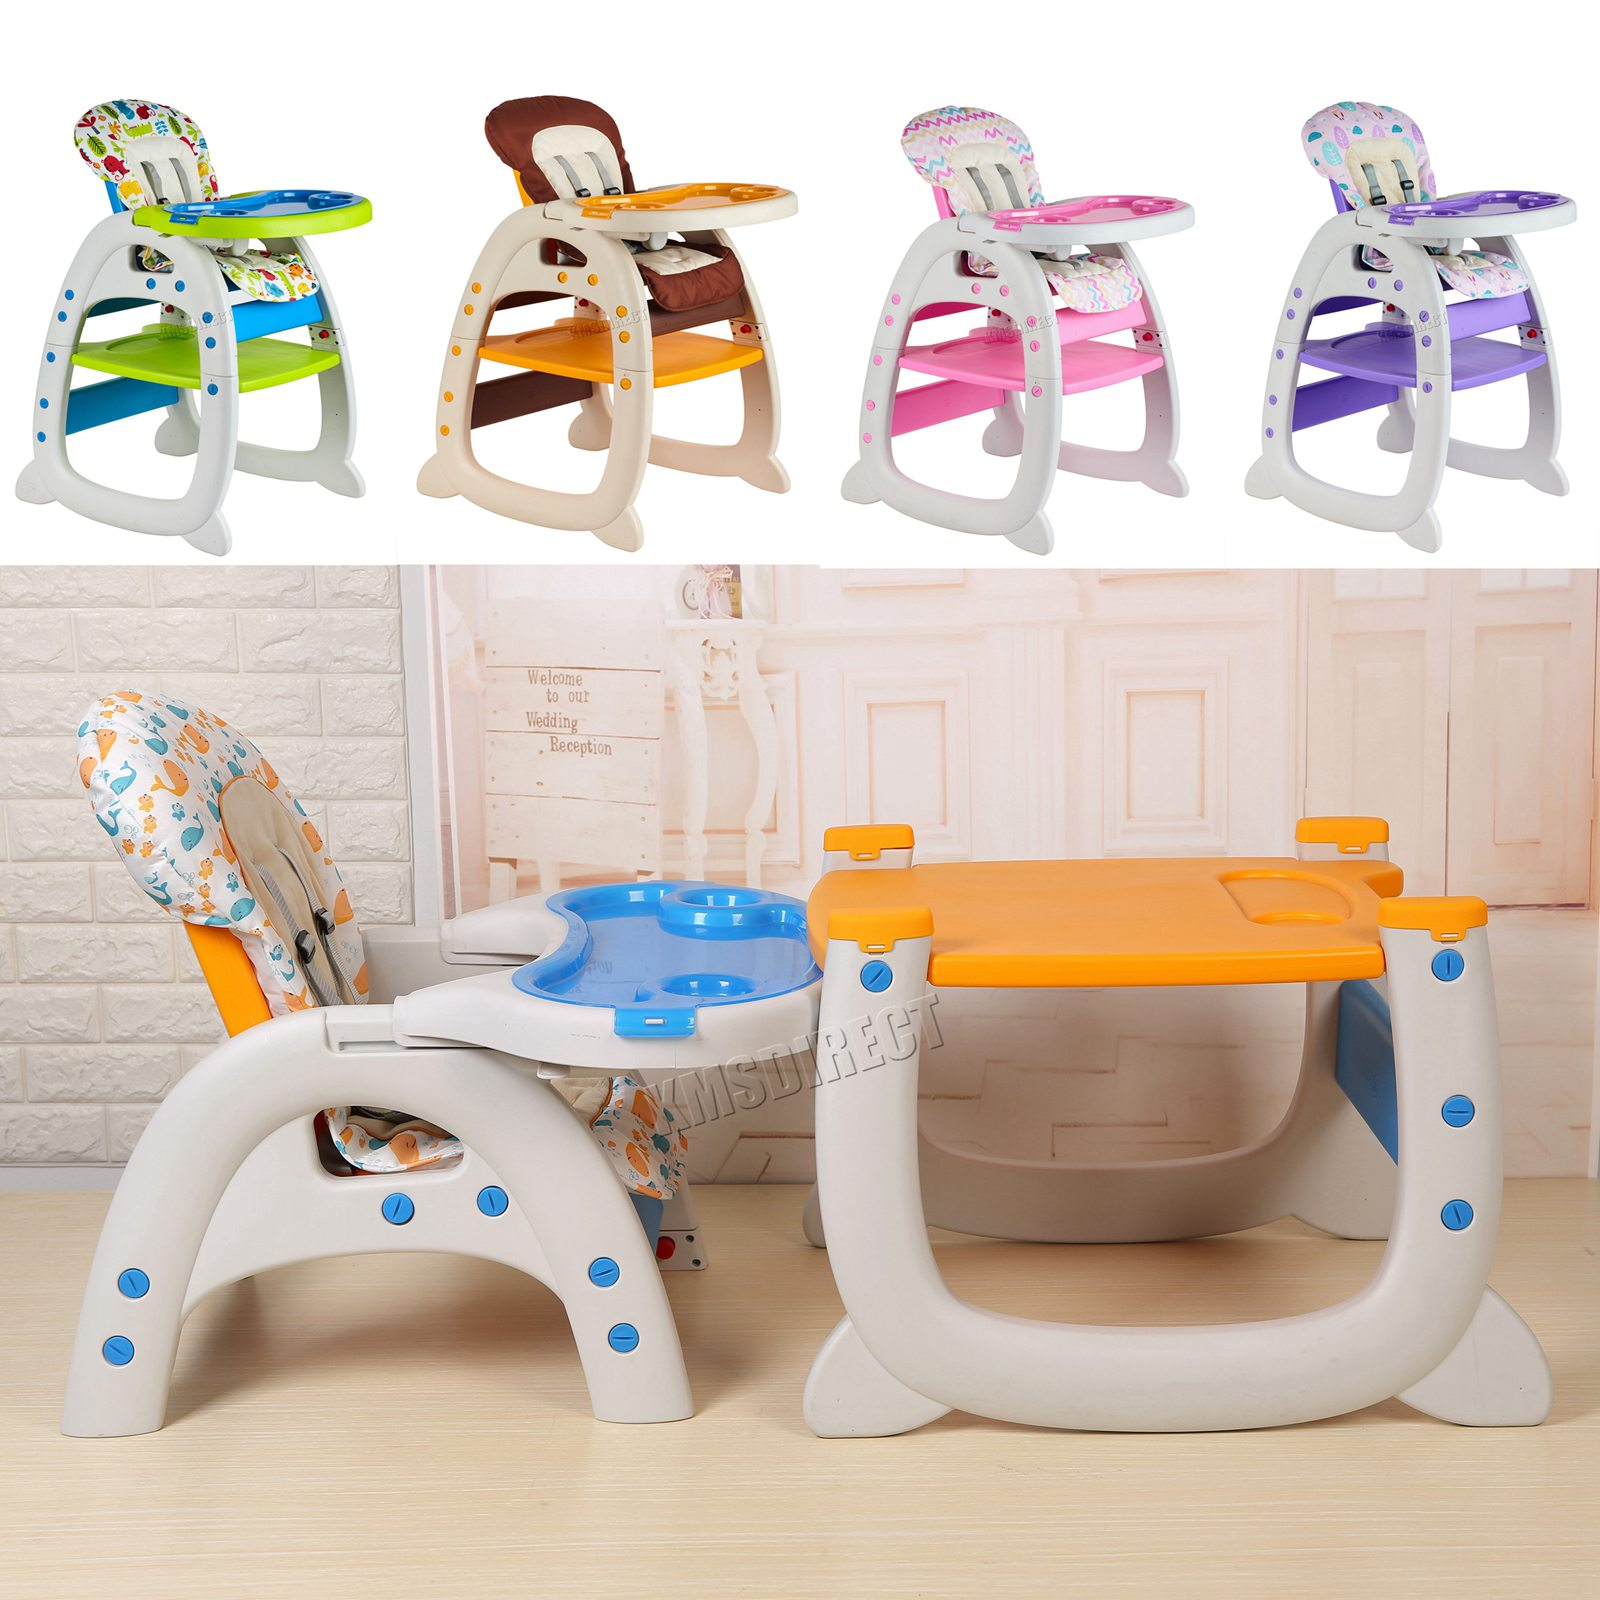 Image result for Baby High Chair For Different Age Ranges